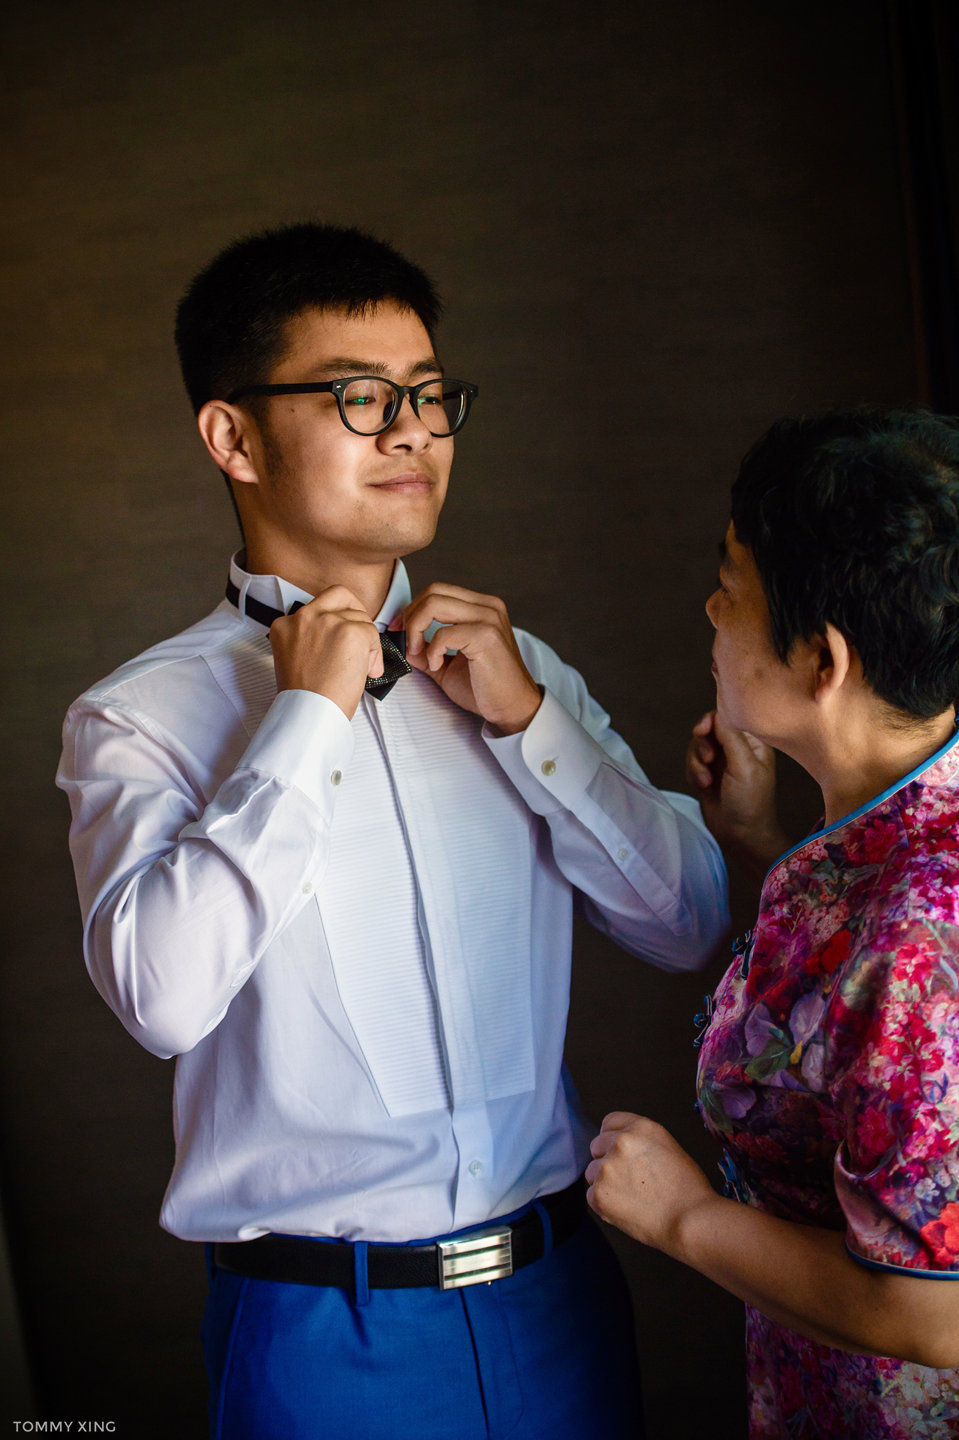 Wayfarers chapel Wedding Photography Ranho Palos Verdes Tommy Xing Photography 洛杉矶玻璃教堂婚礼婚纱照摄影师019.jpg